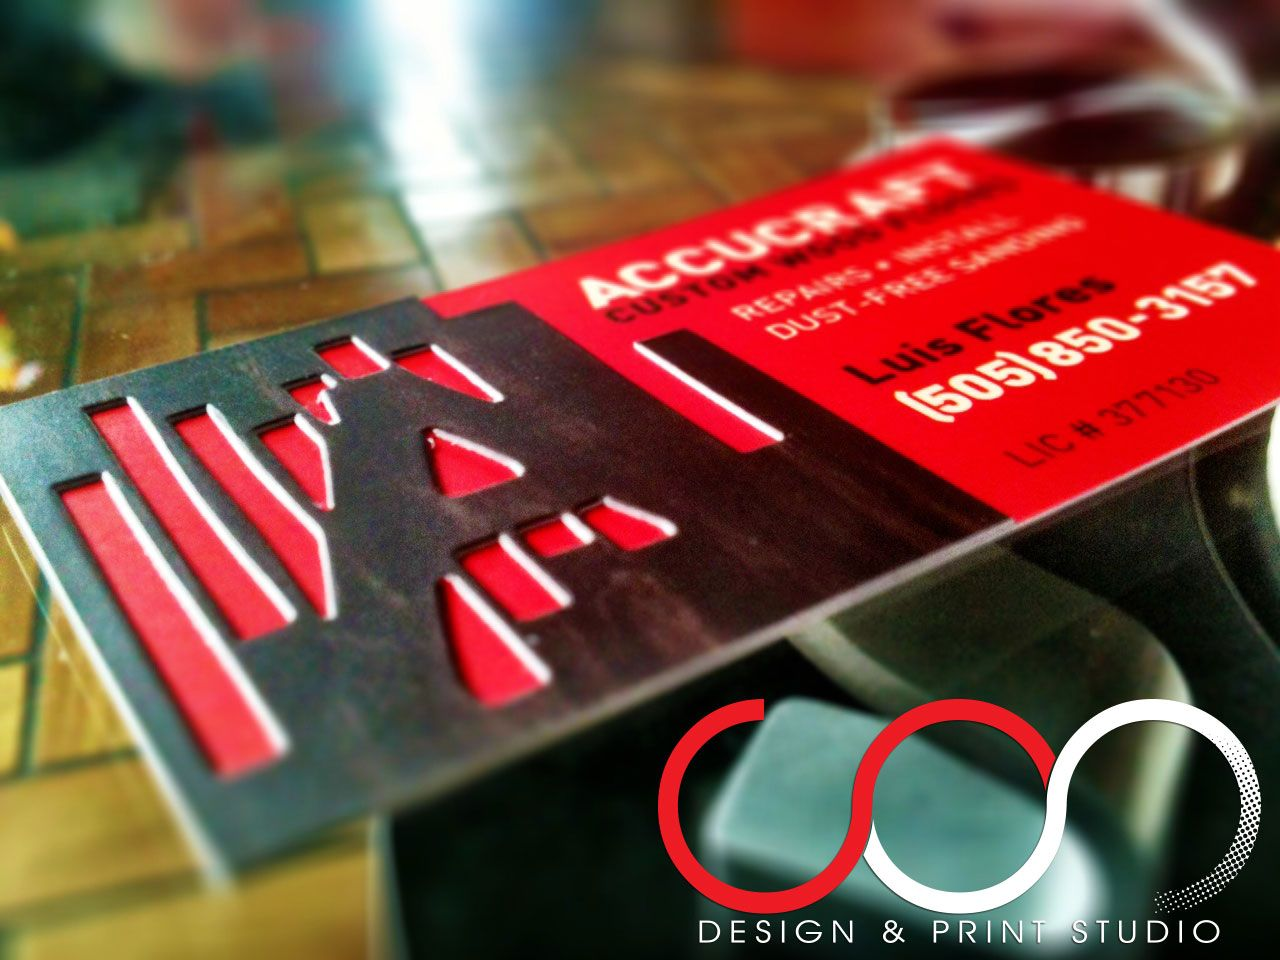 Custom Designed Printed Specialty Business Cards by www.sosprints ...